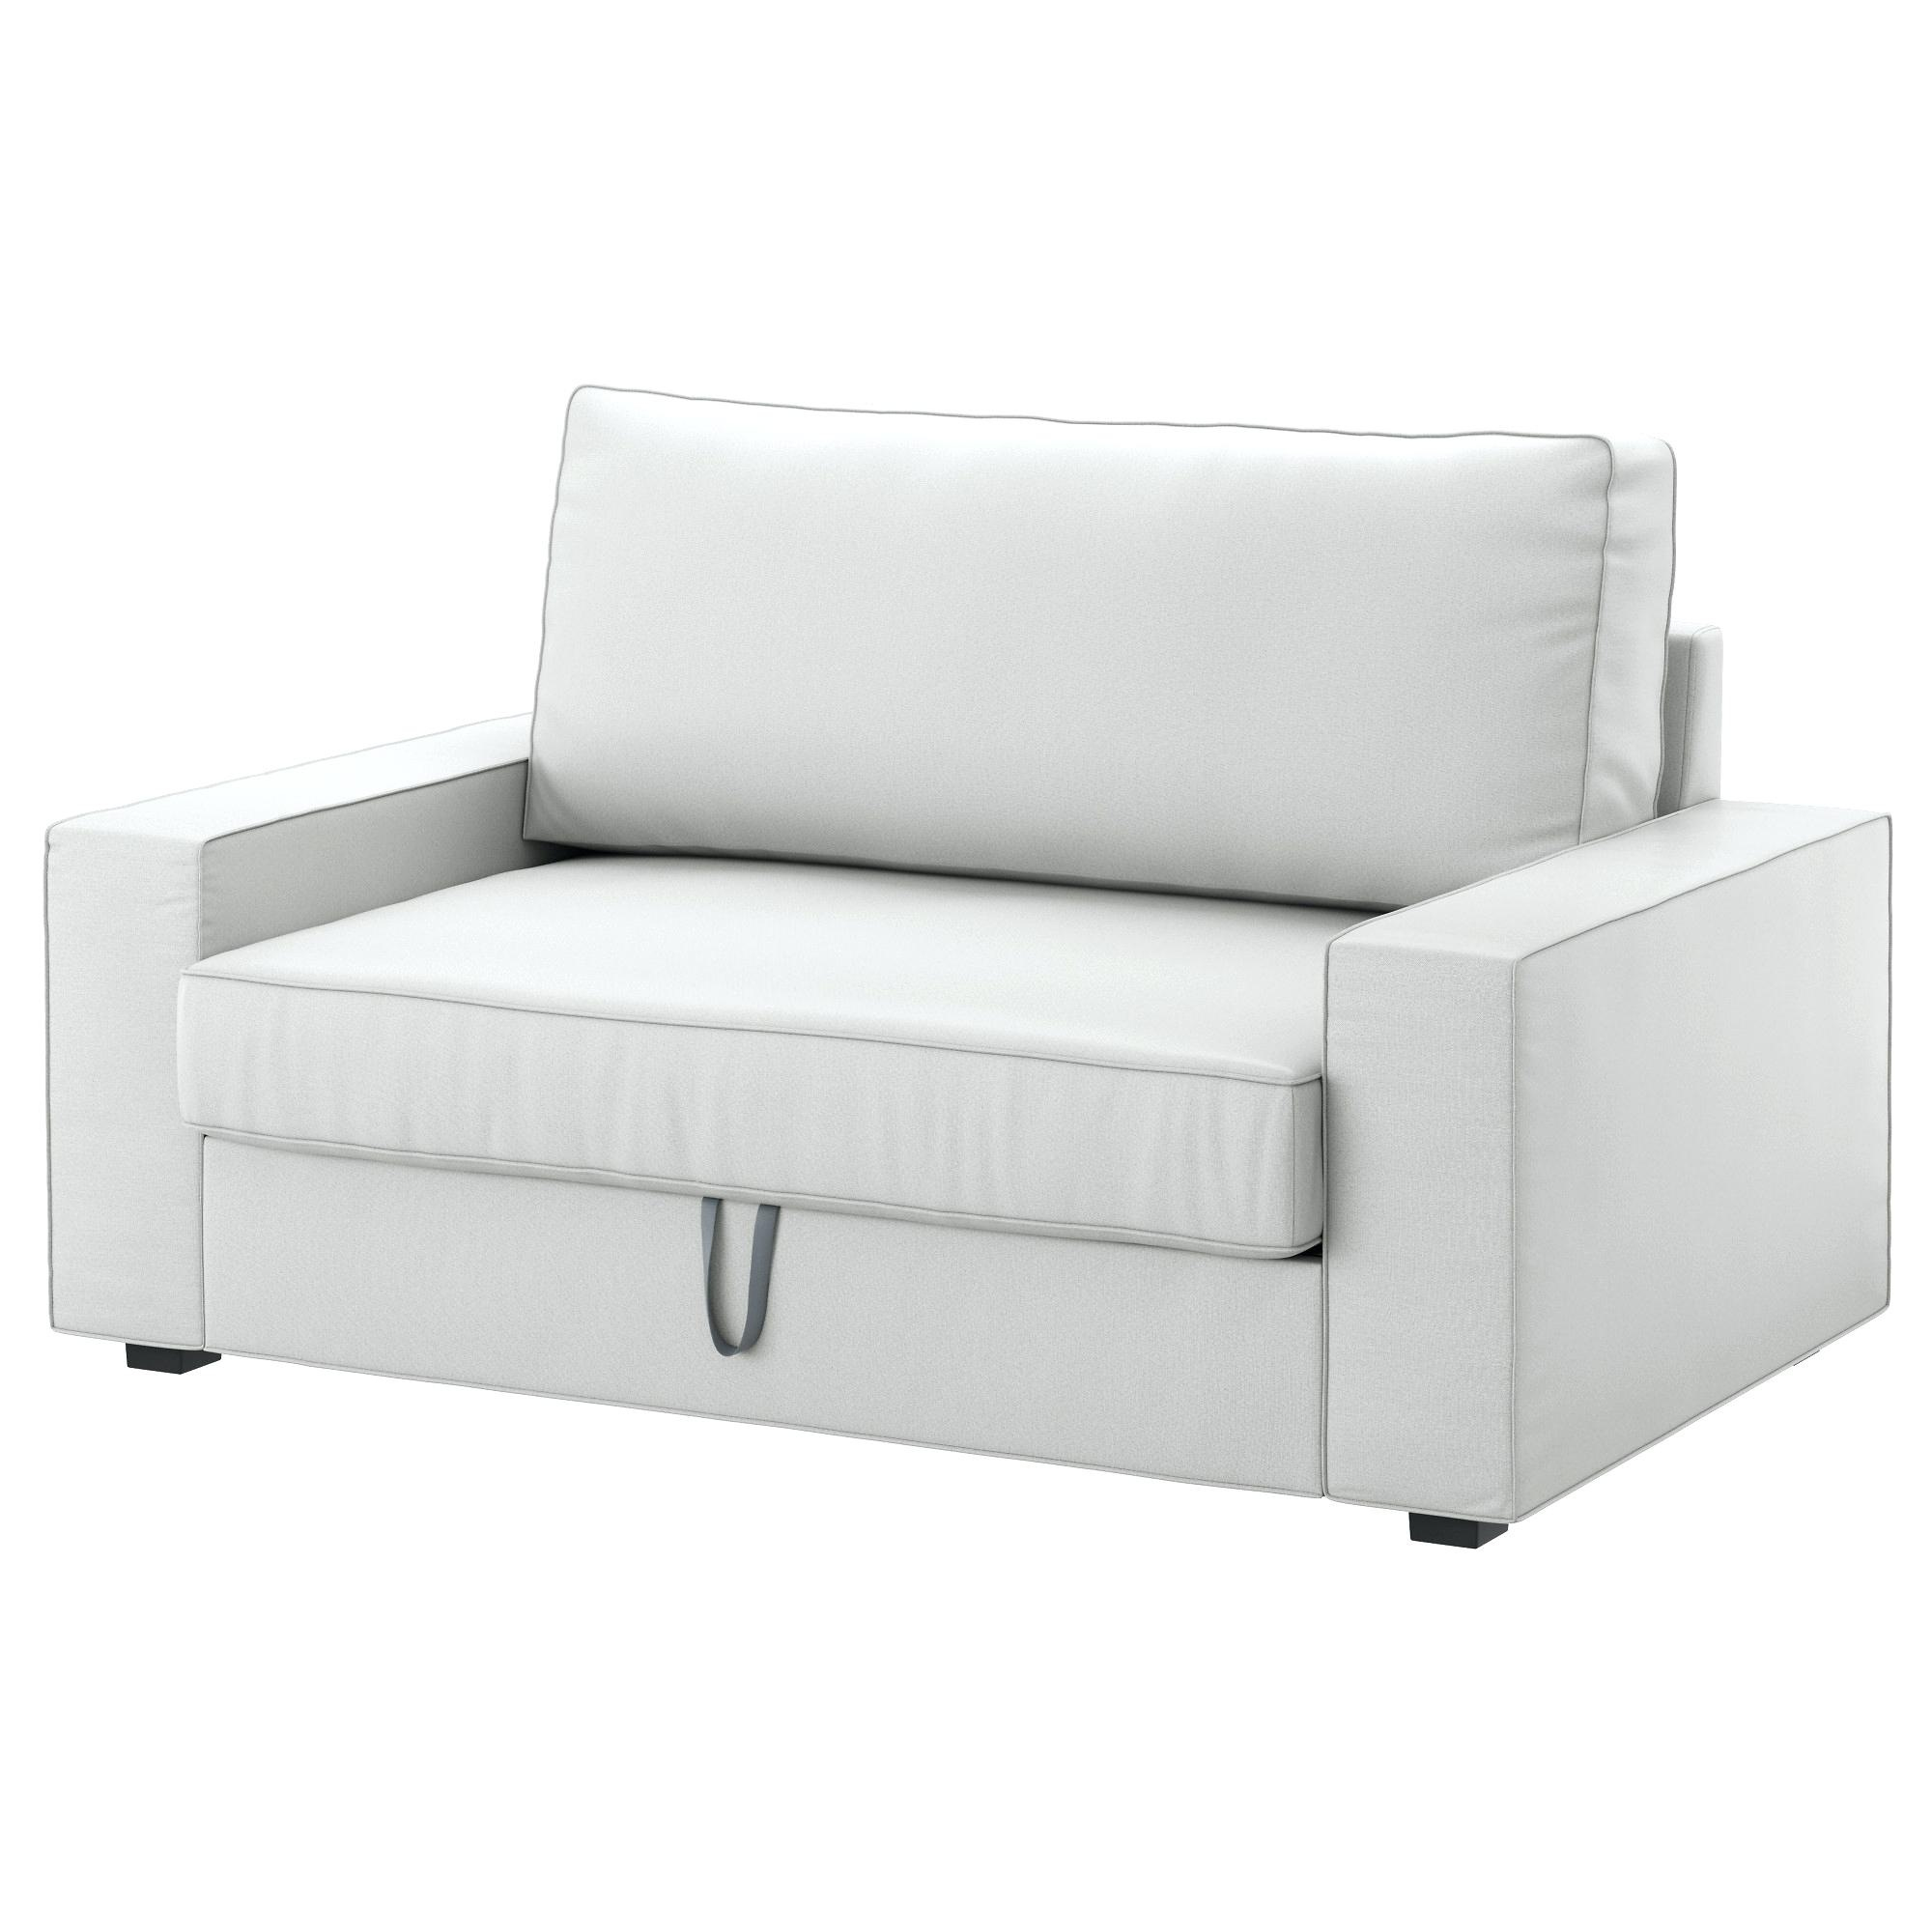 Ikea Ektorp 3 Places Beau Photos Ikea Housse Clic Clac Best Ektorp sofa Blekinge White Ikea I Want